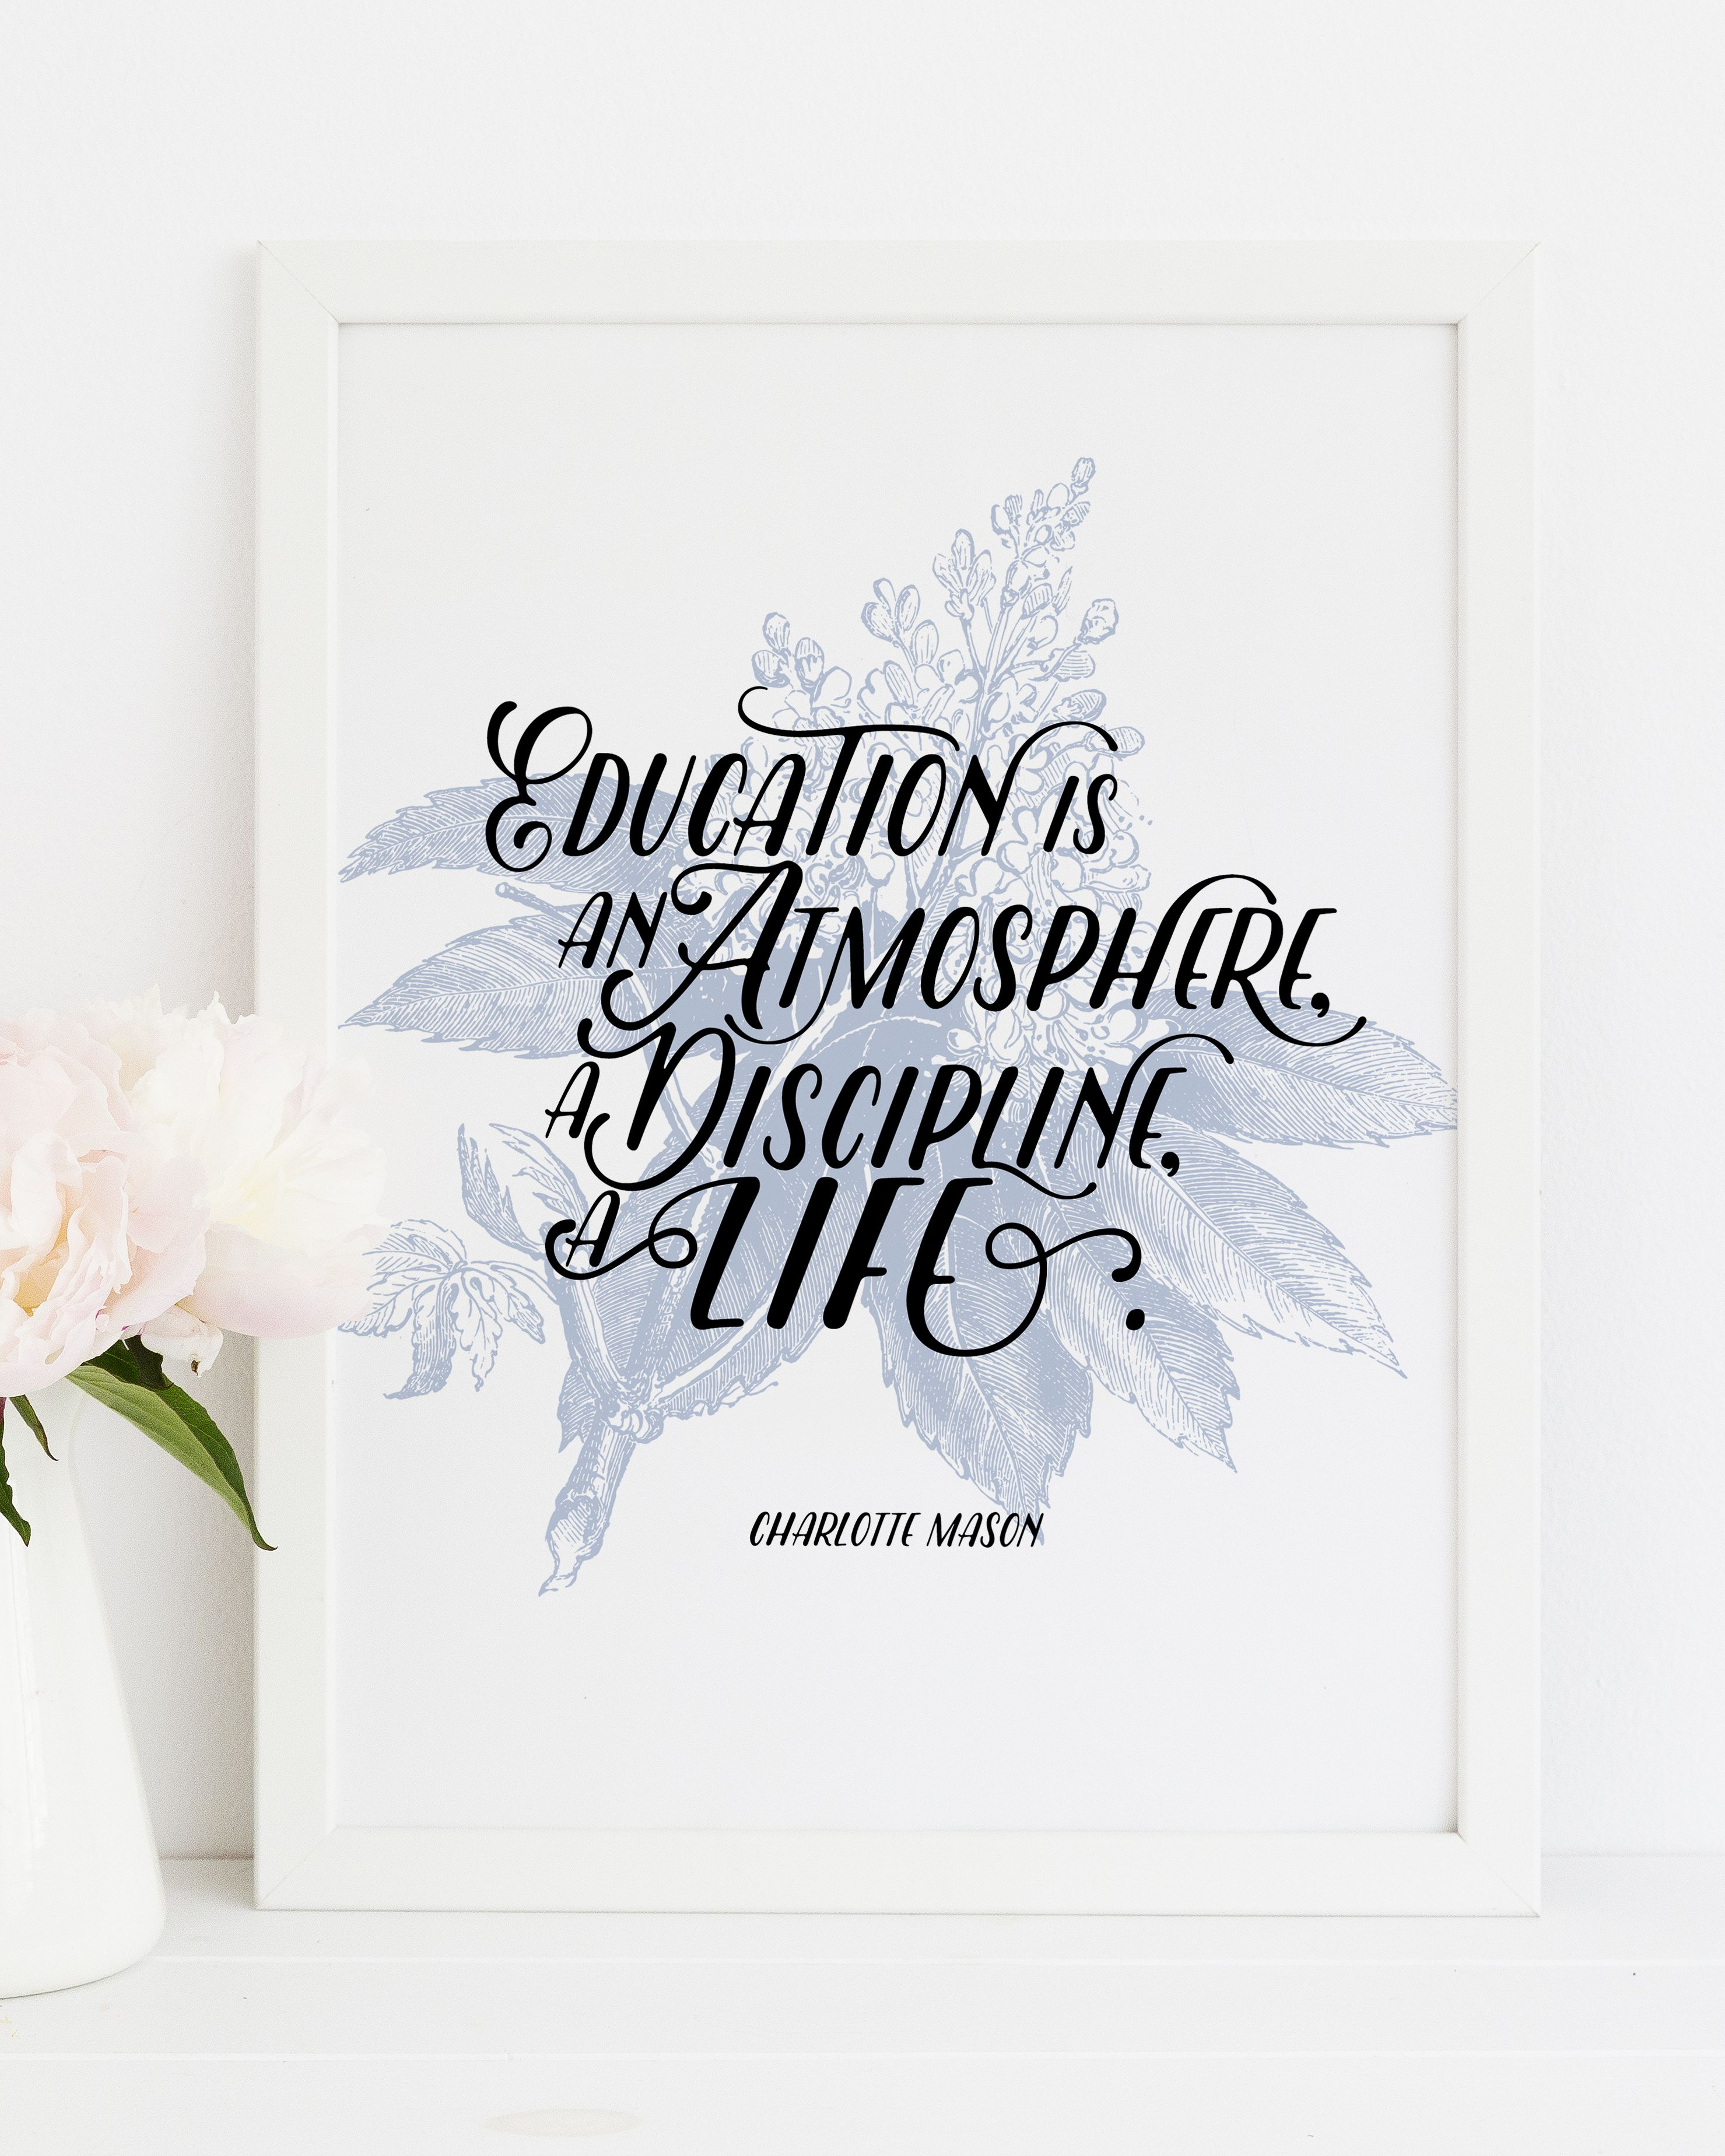 Charlotte Mason Quotes About Education